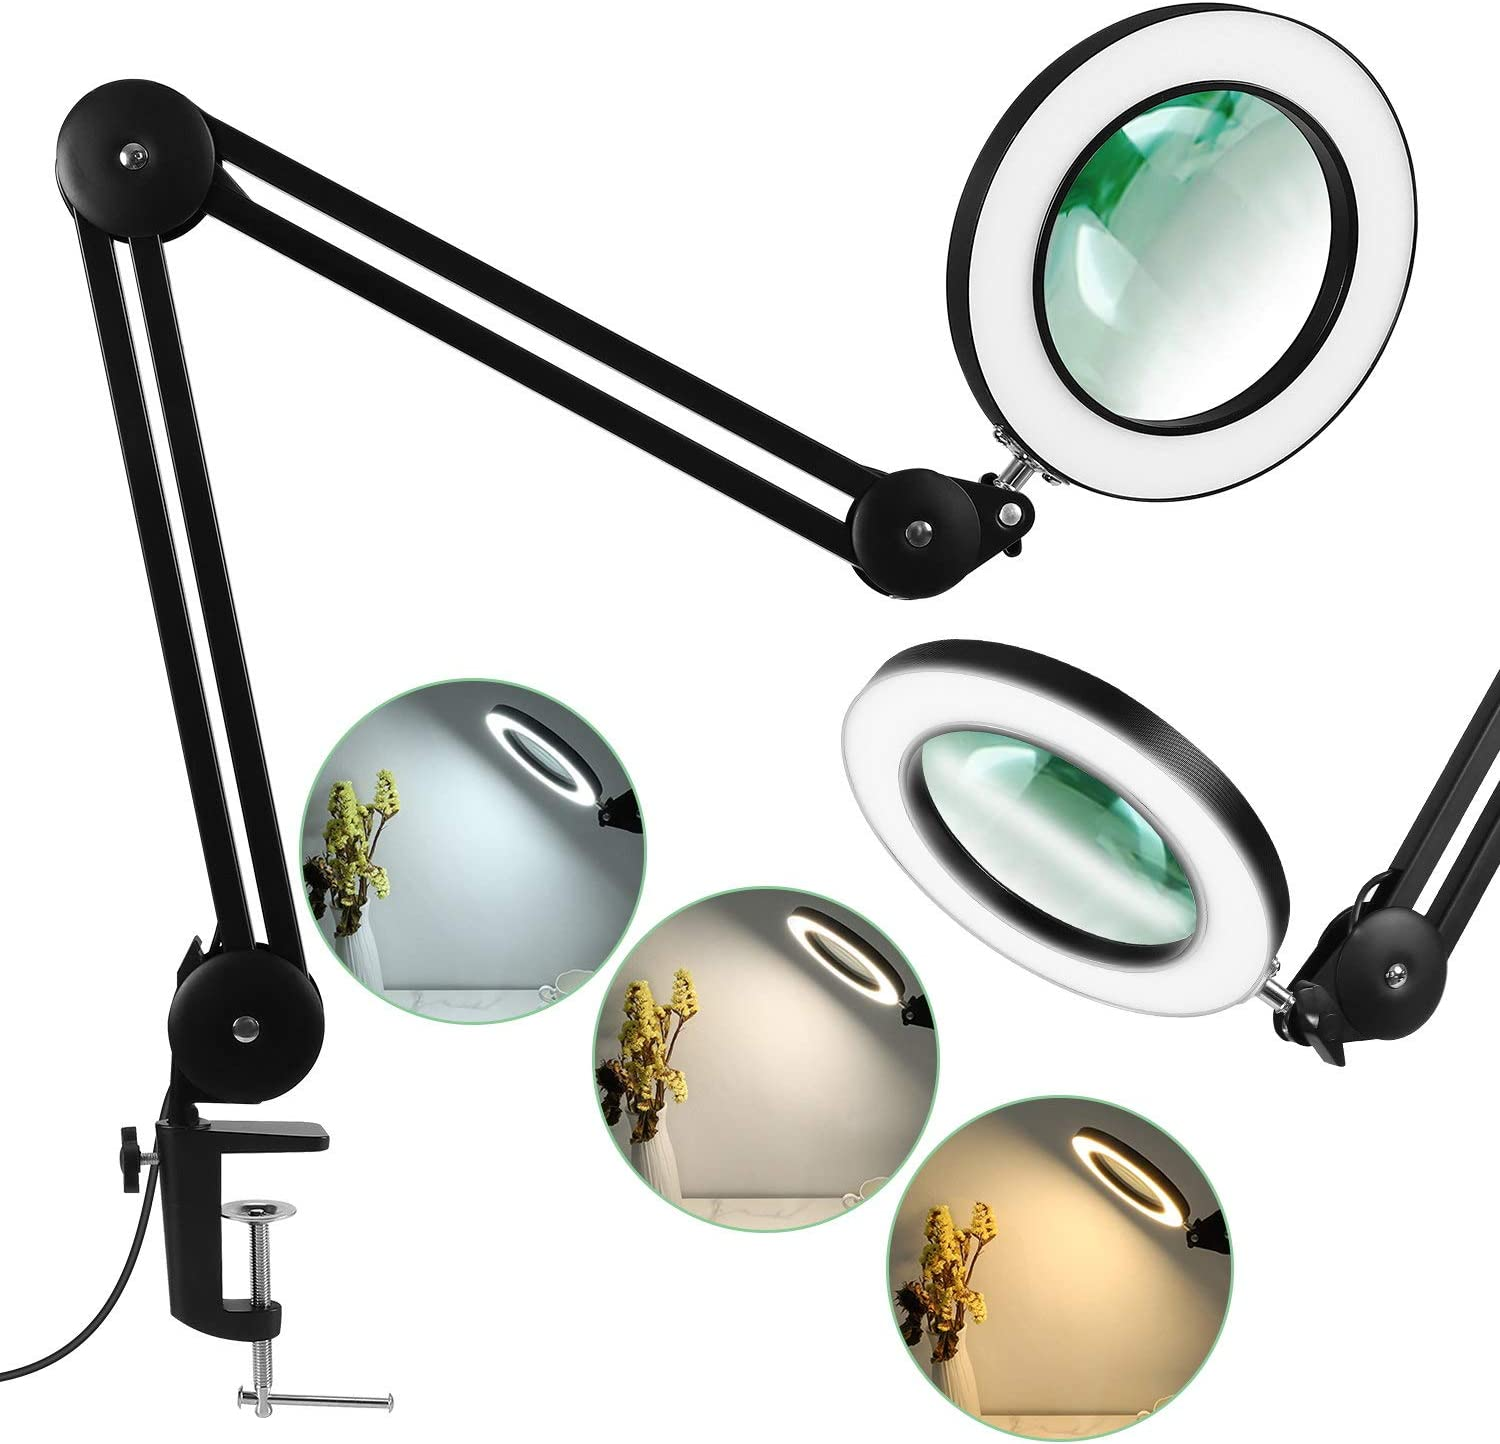 LANCOSC Magnifying Glass with Light for Close Work, 5-Diopter, 3 Color Modes, Stepless Dimmable, Adjustable Swivel Arm with Clamp, LED Magnifier Desk Lamp for Repair, Crafts, Reading, Sewing - Black